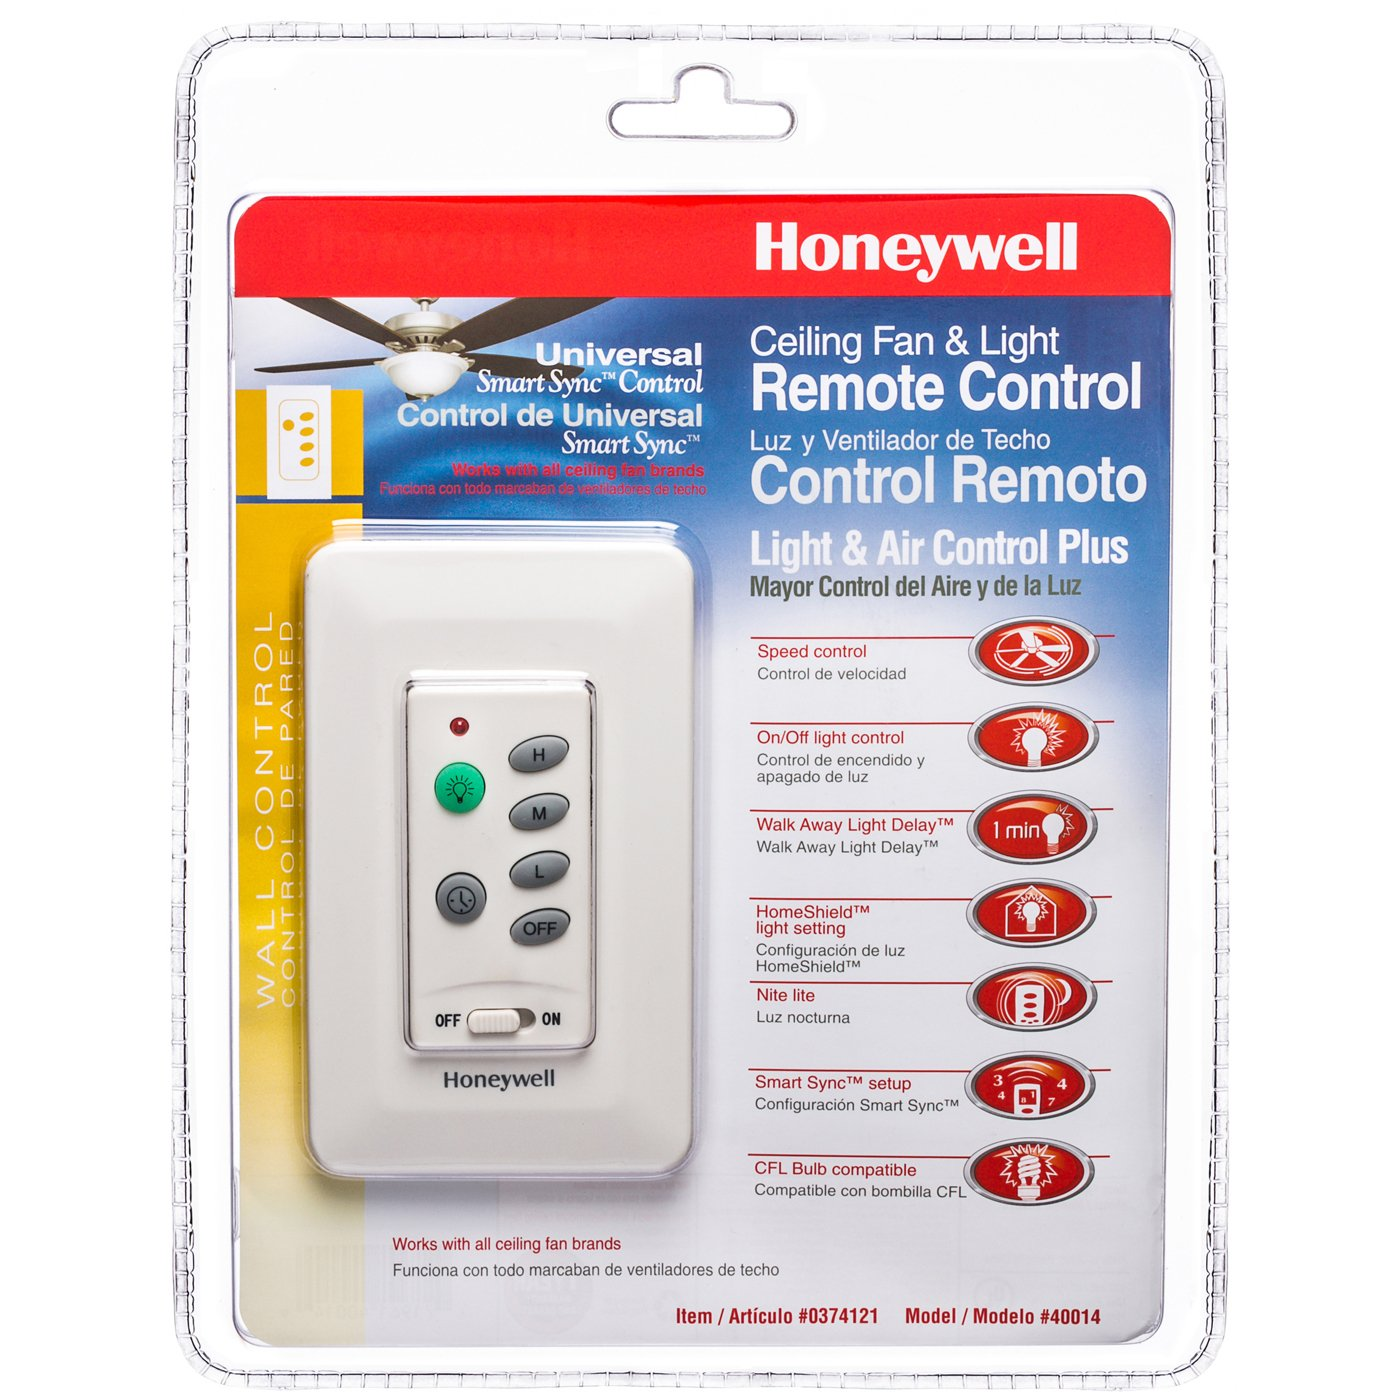 Ceiling Fan Wall Mounted Remote Shelly Lighting